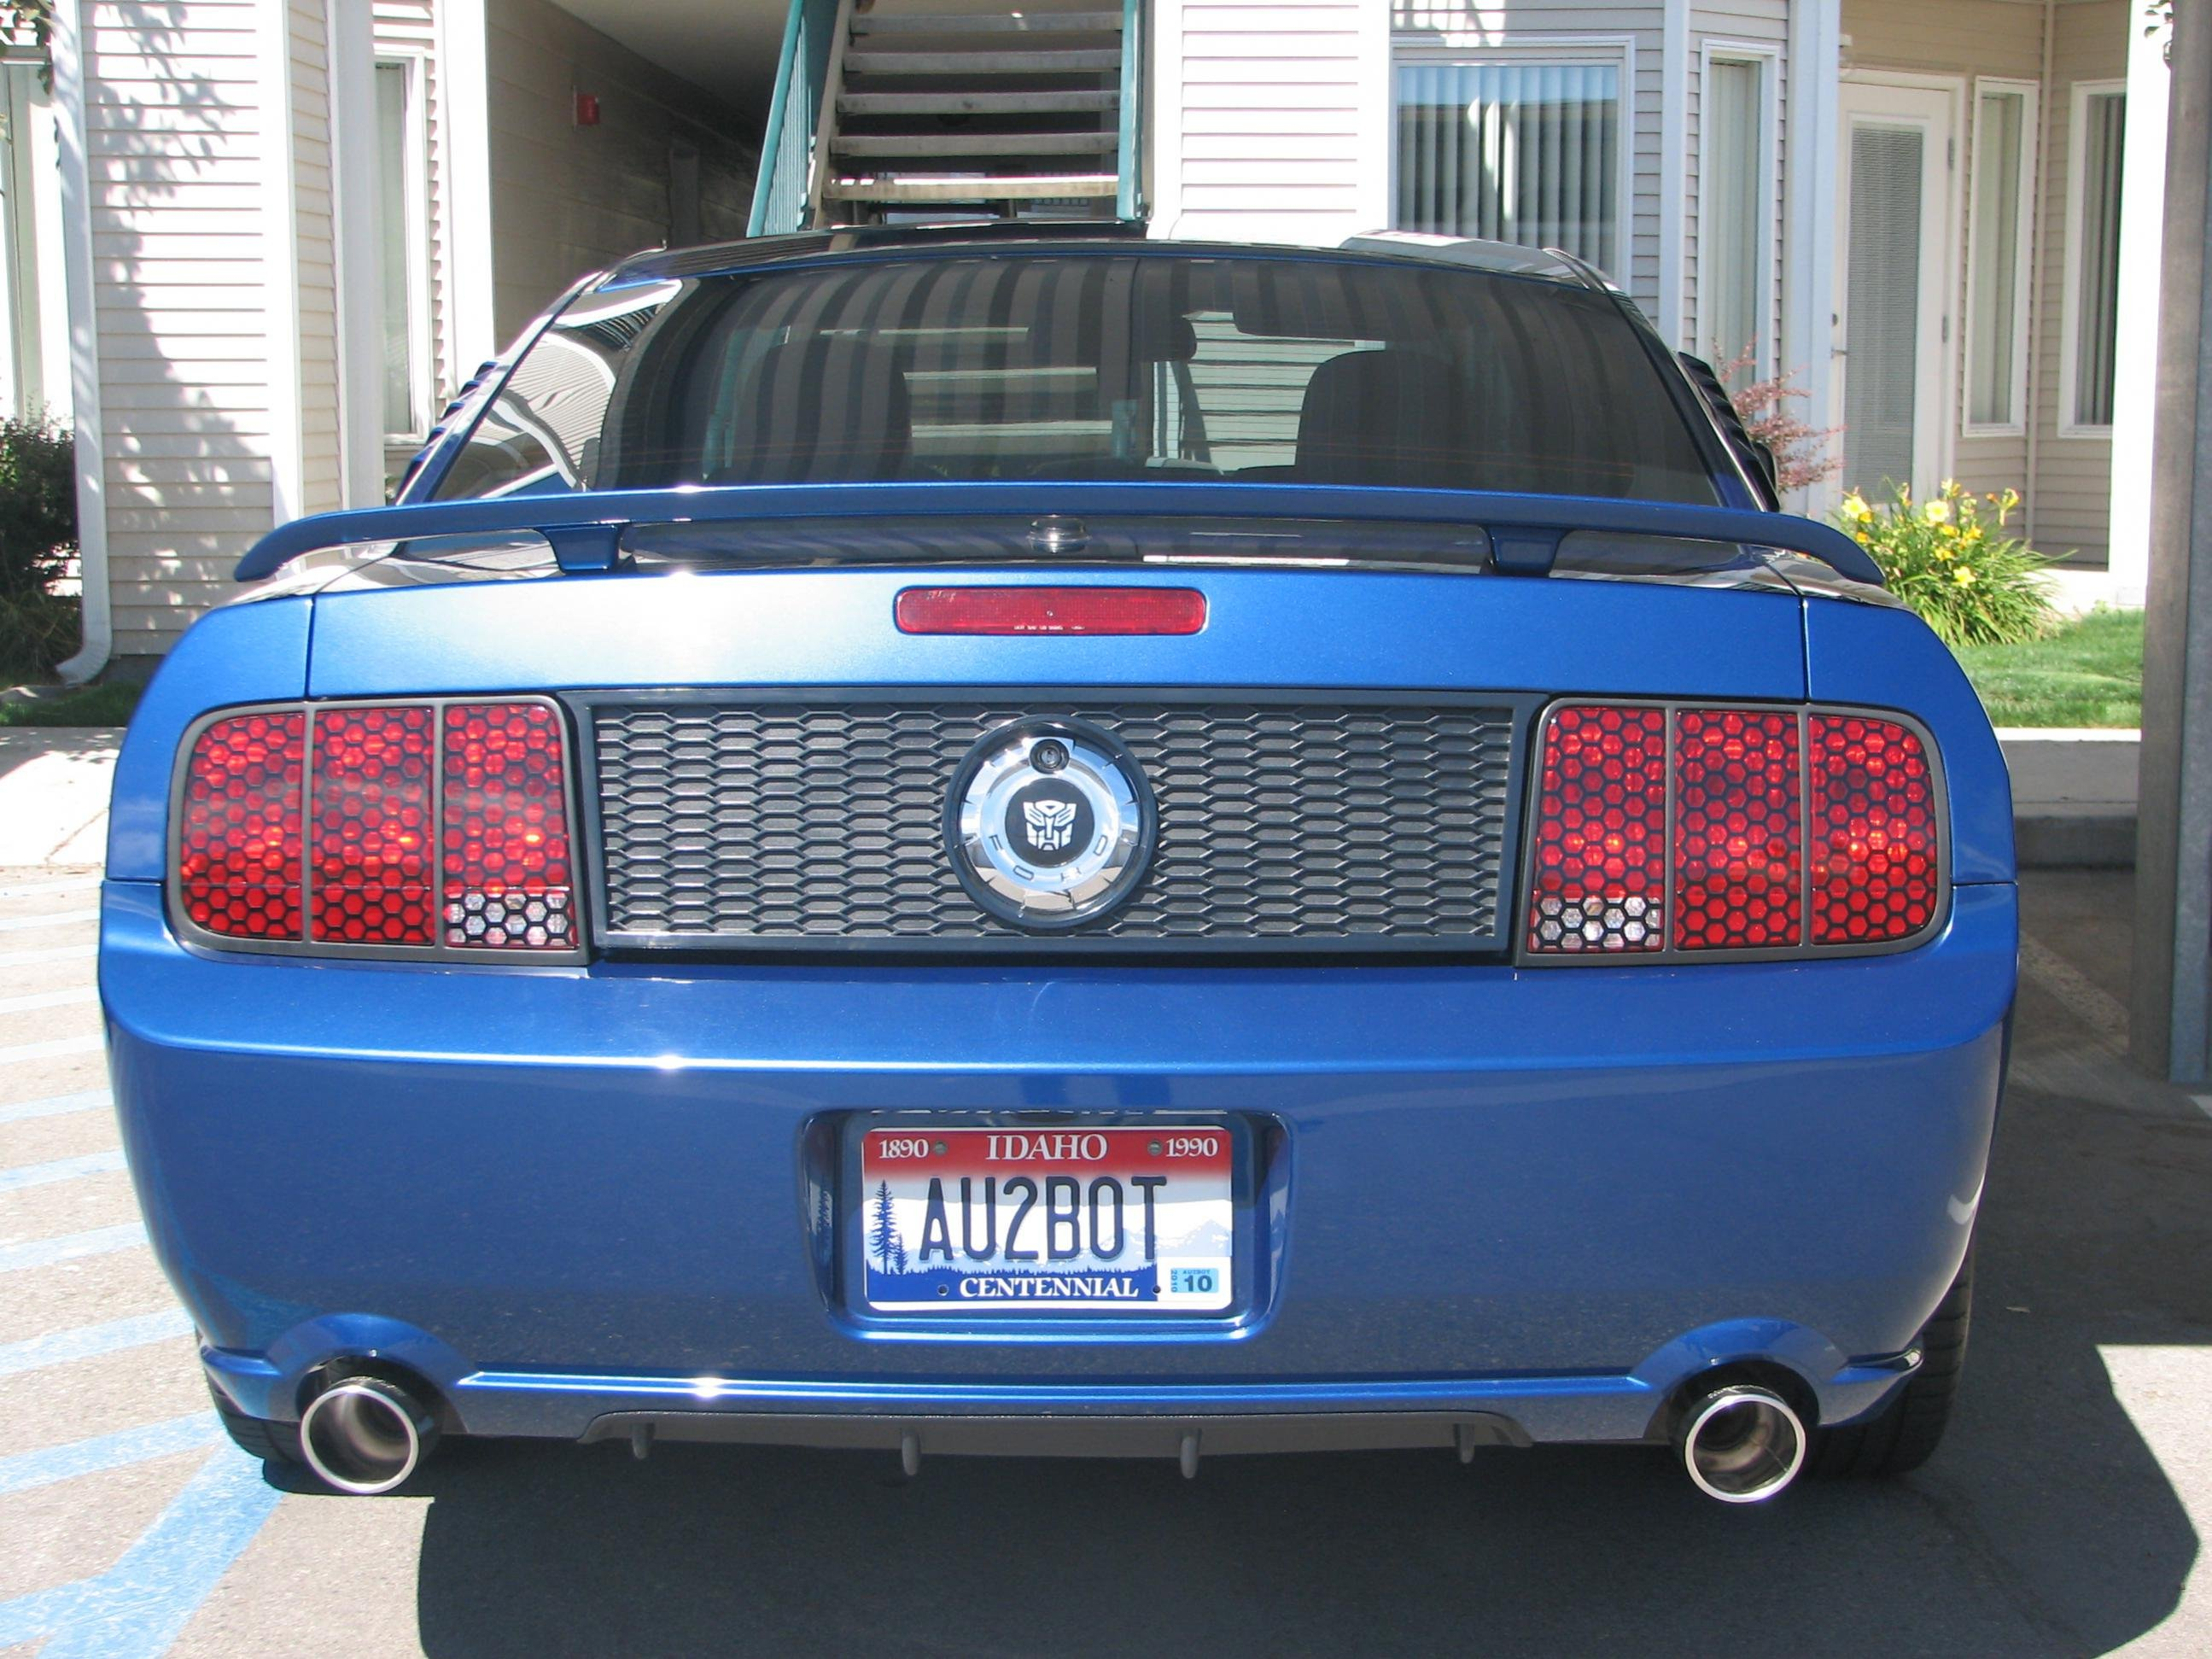 Customized License Plates >> Personalized License Plates - Cool or Stupid? - Ford Mustang Forum